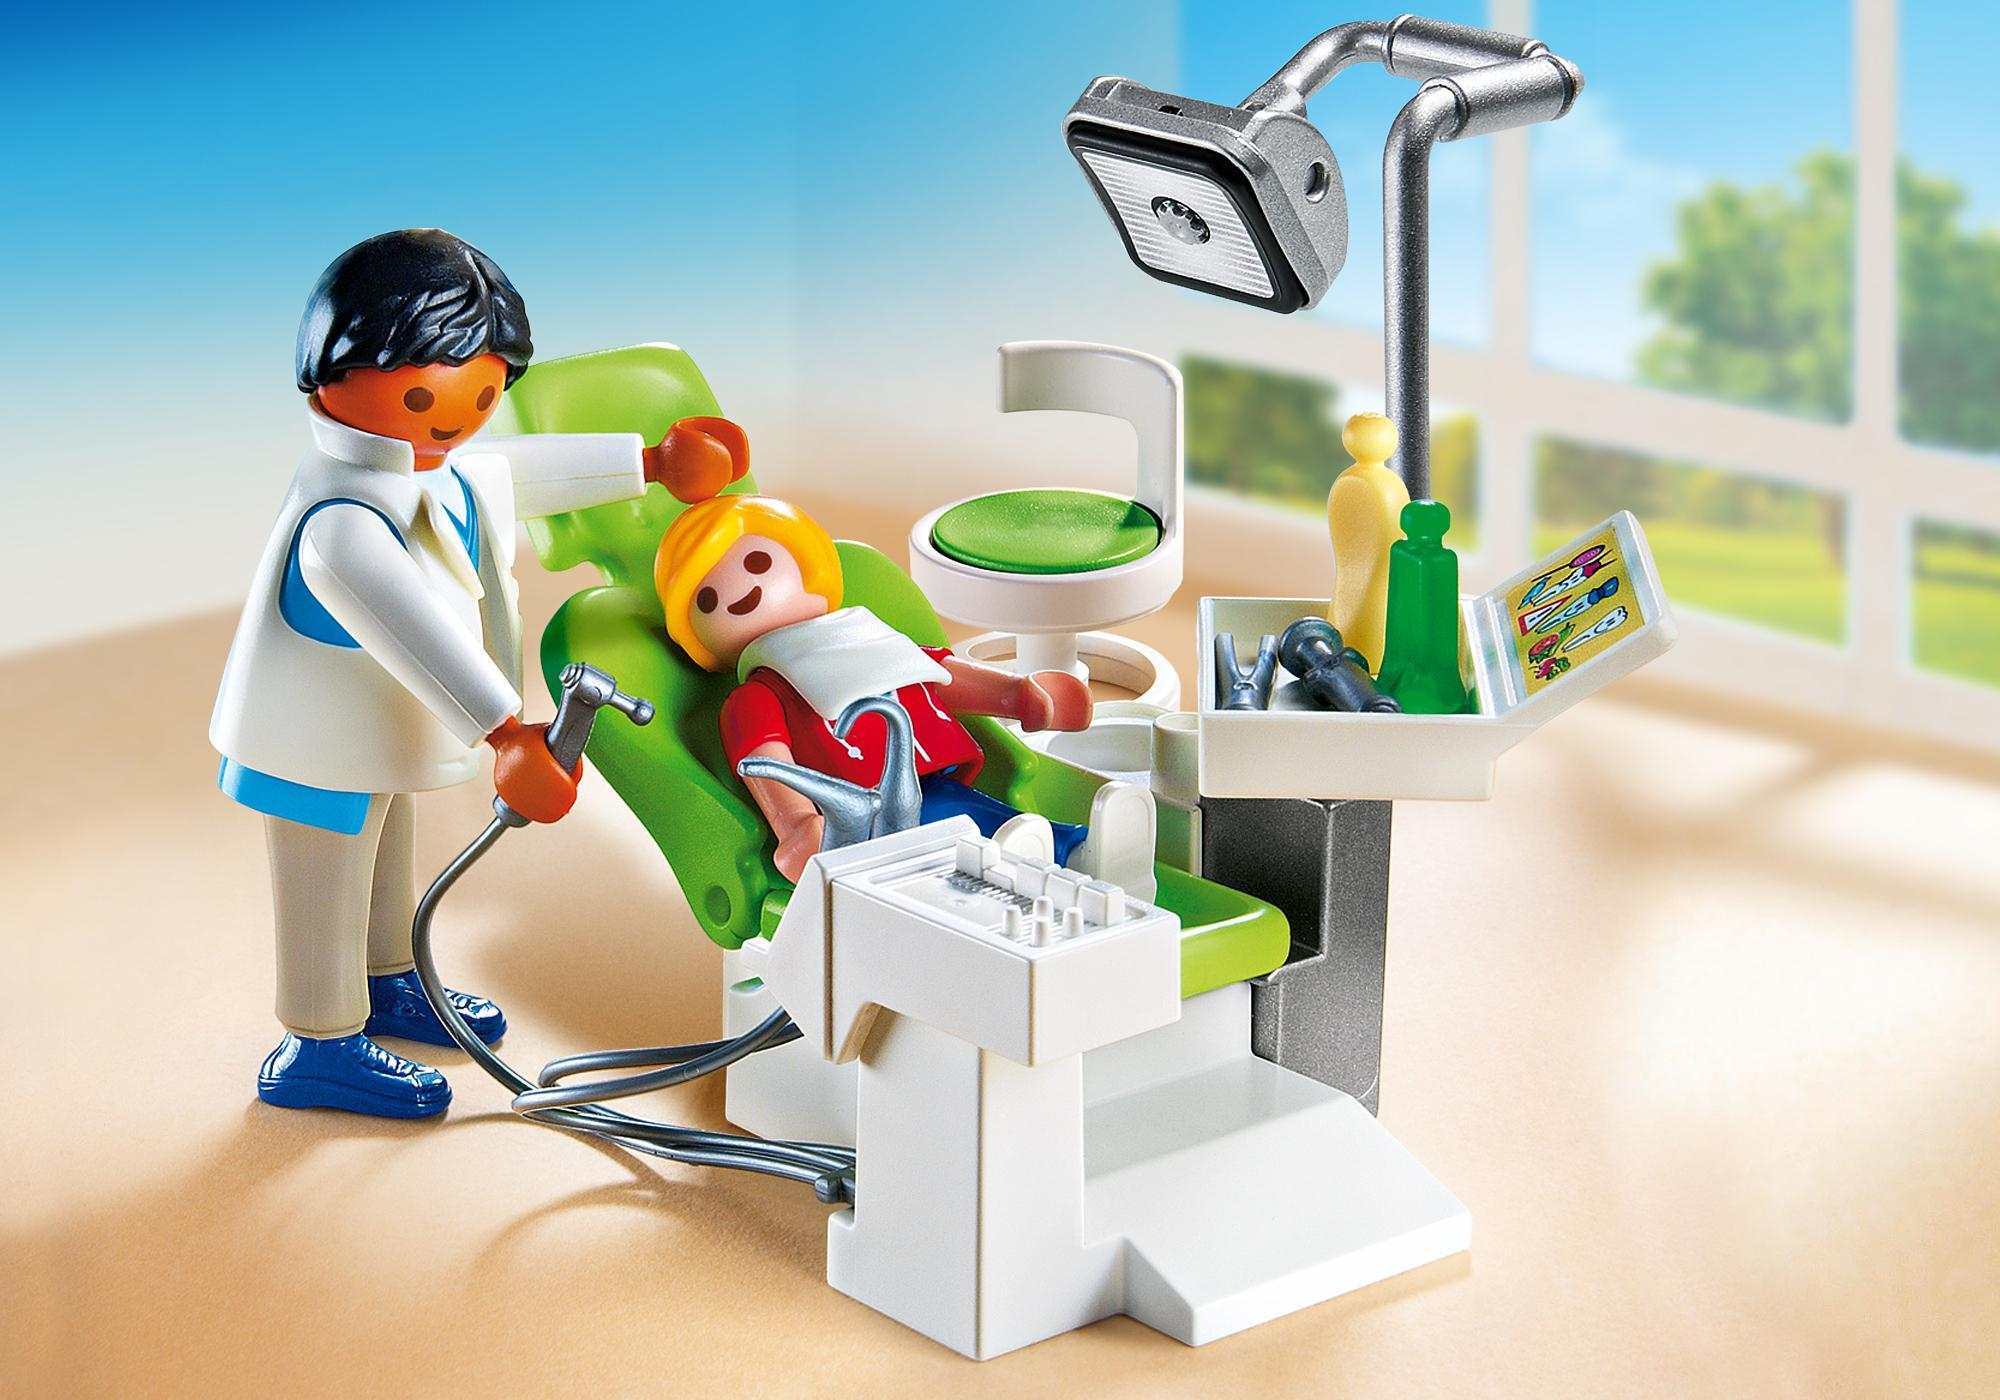 http://media.playmobil.com/i/playmobil/6662_product_detail/Dentista con Paciente